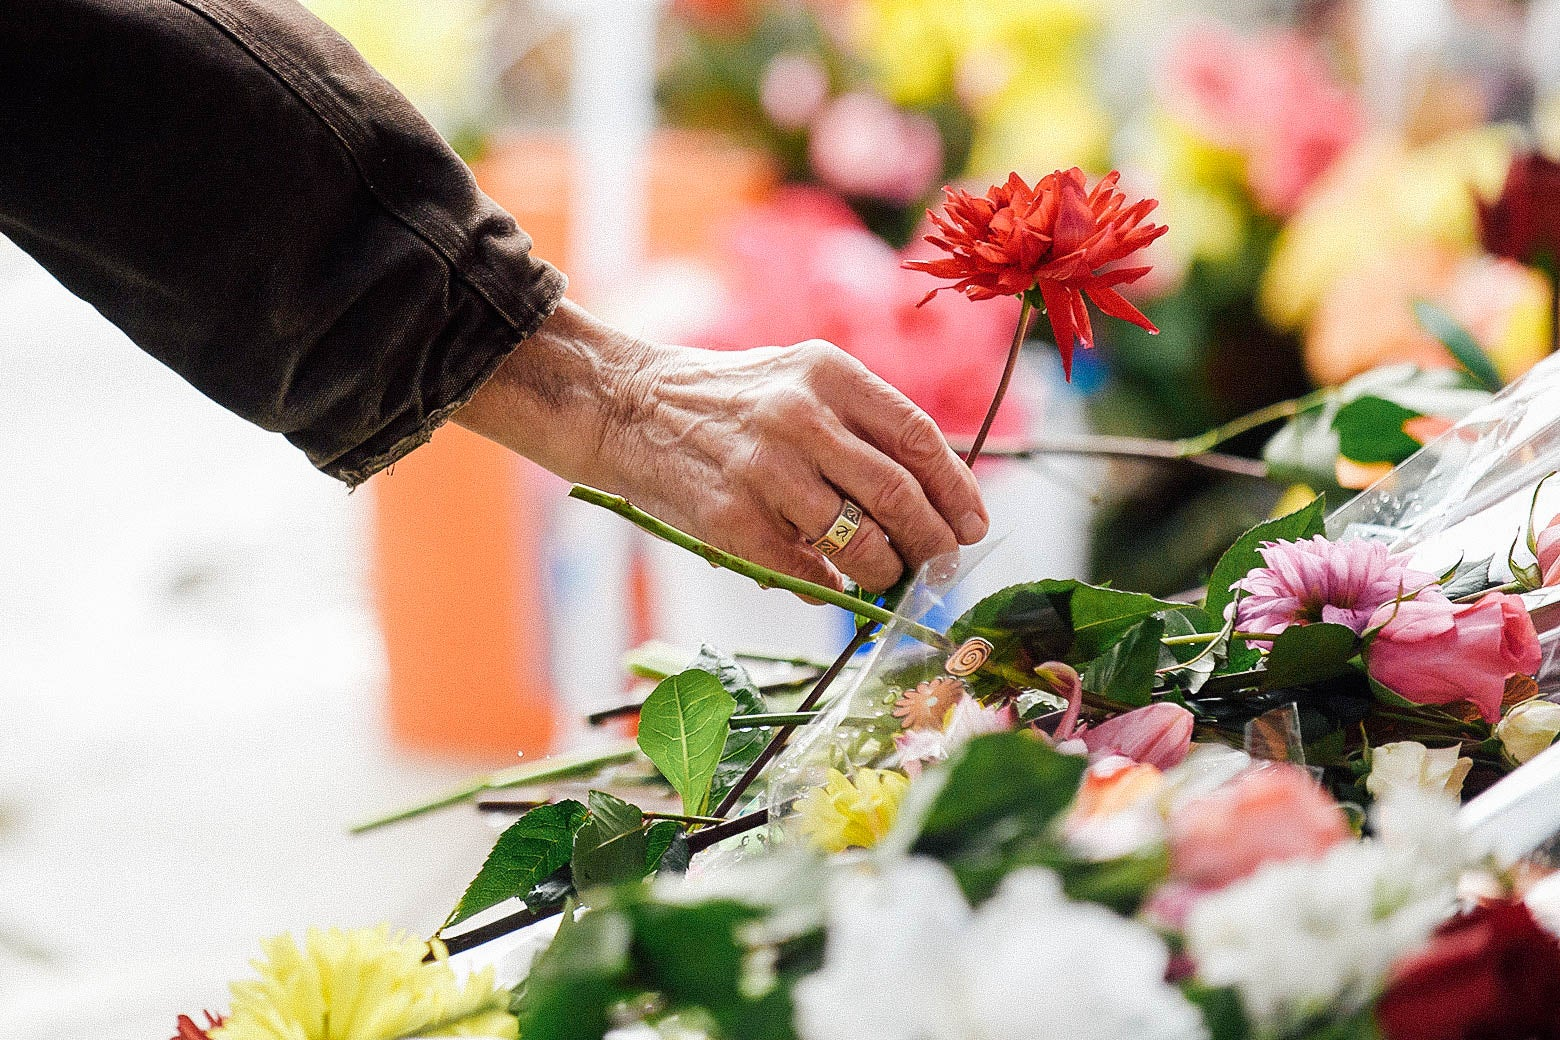 A hand reaching down to lay a flower on the memorial.